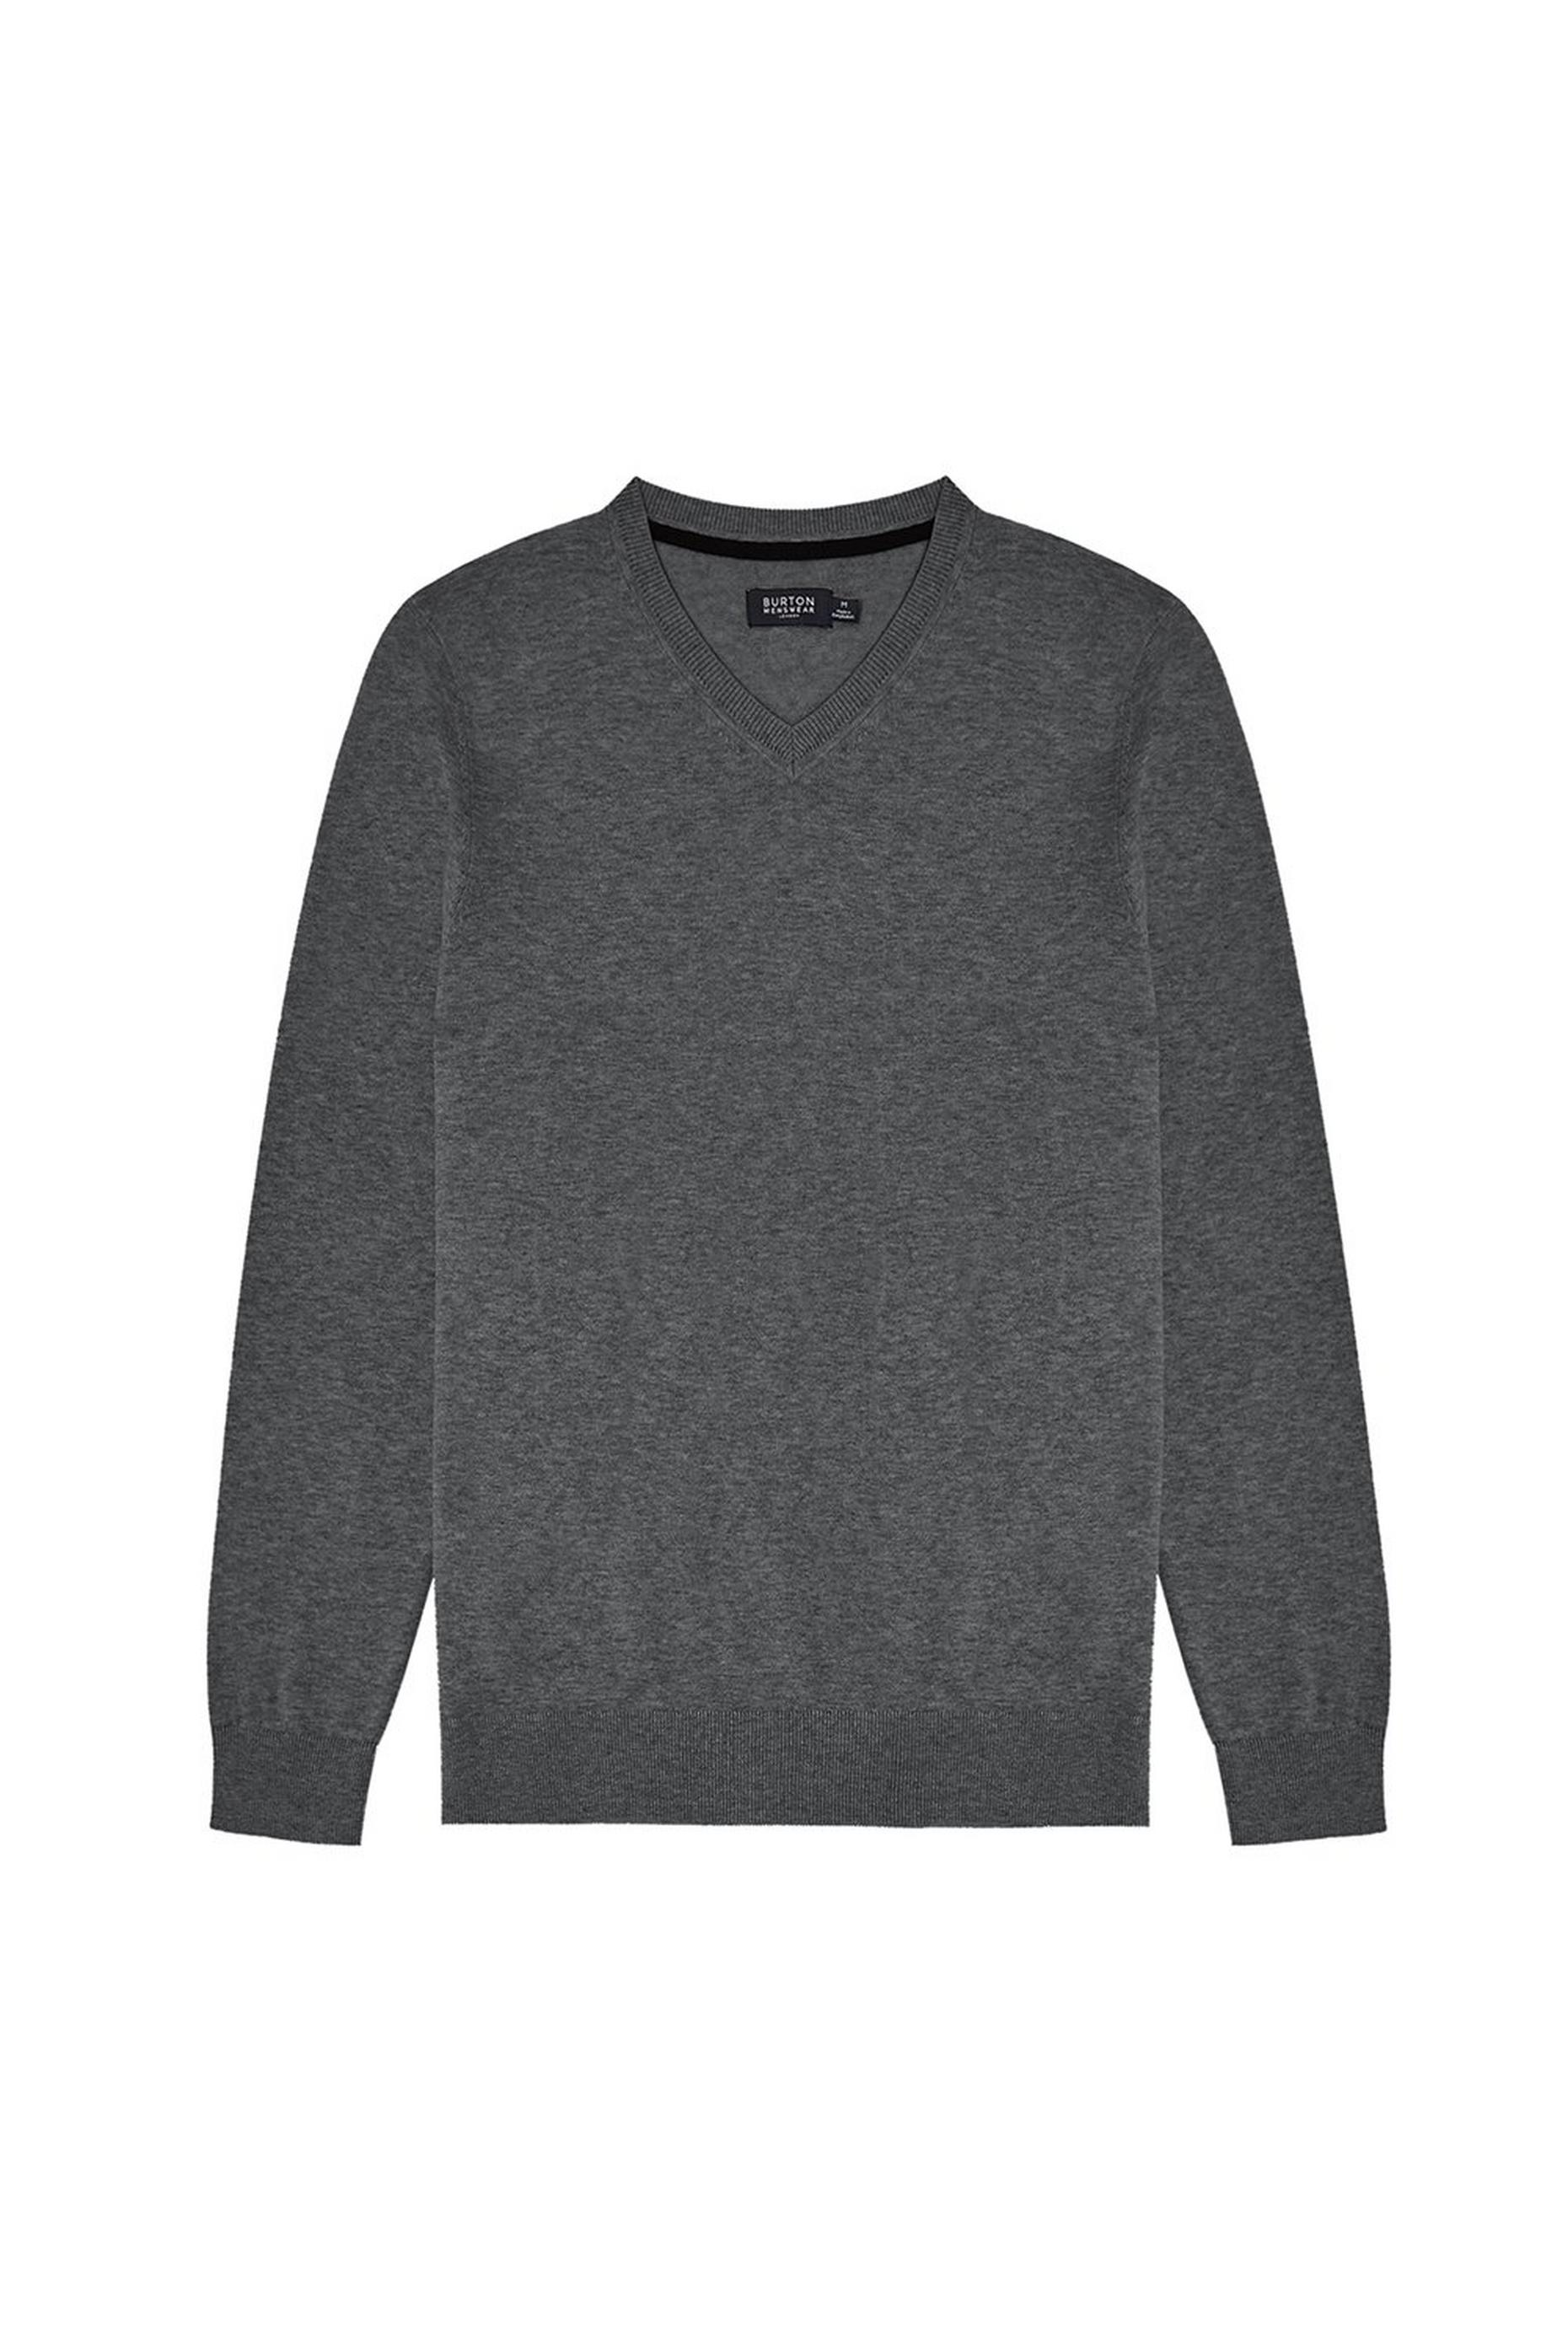 Charcoal Grey V Neck Jumper With Organic Cotton